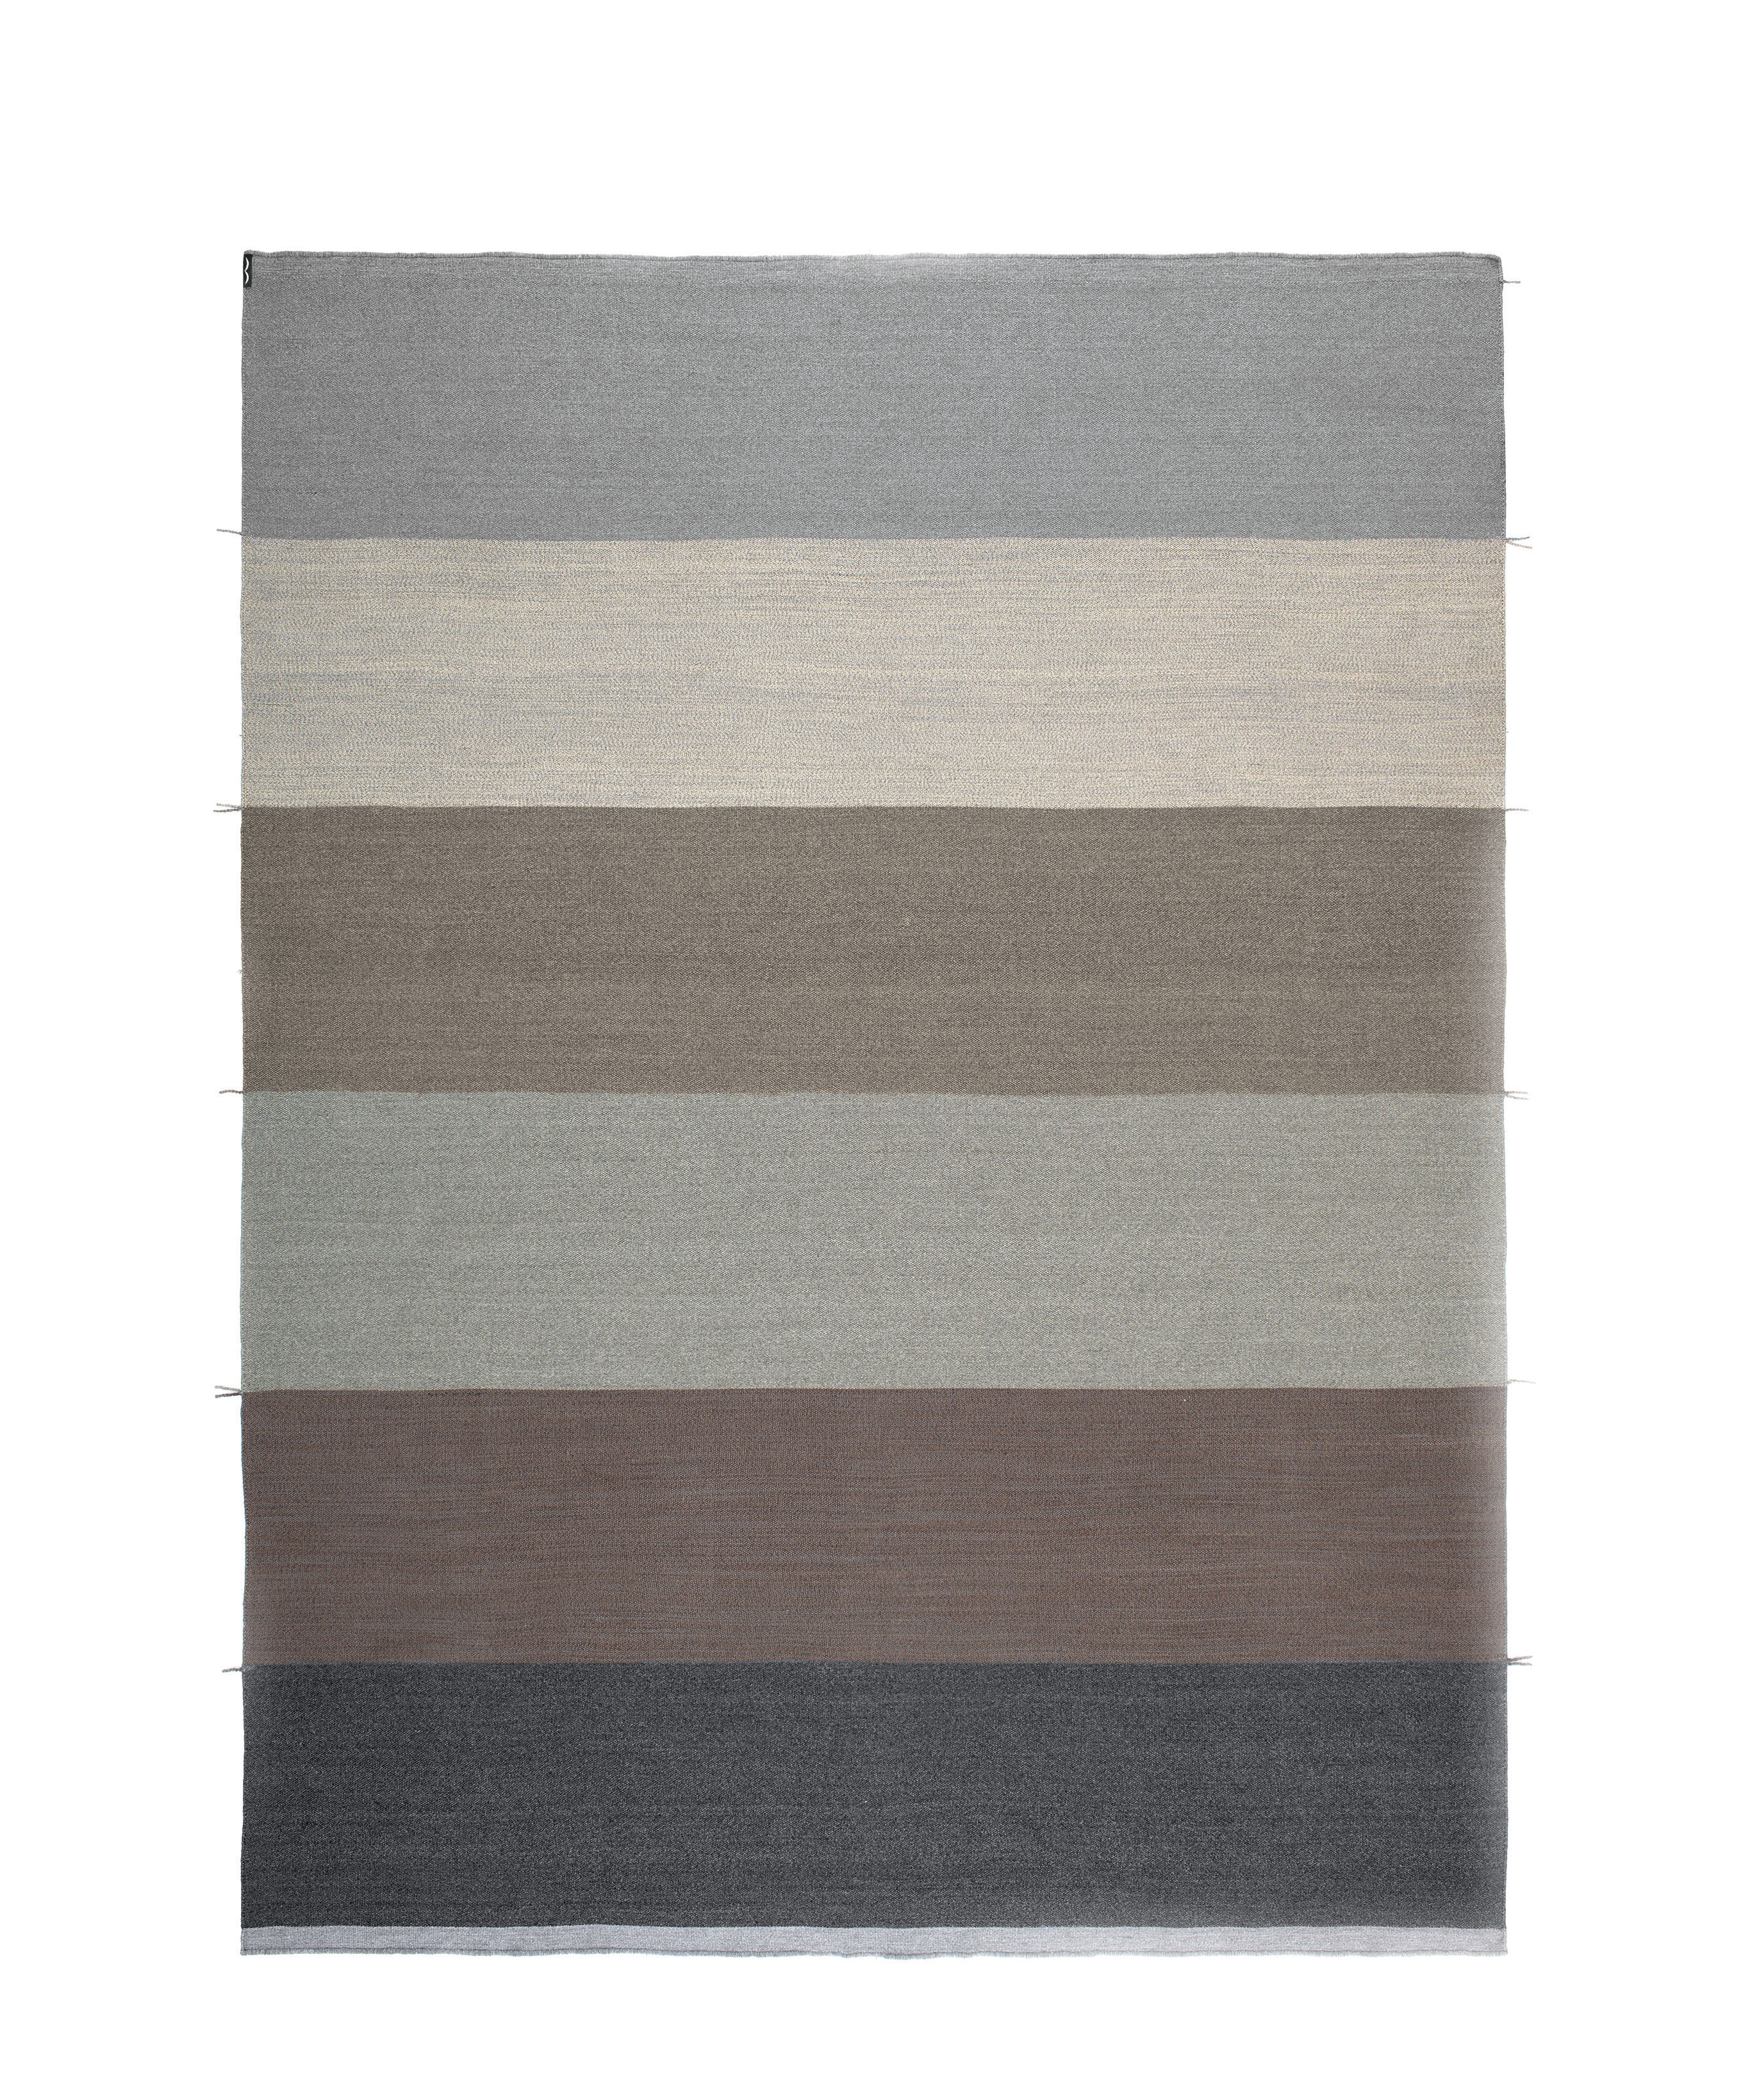 Decoration - Rugs - Mustache - RE Outdoor rug - / Handwoven - 200 x 300 cm by Kristalia - Canvas - Polypropylene